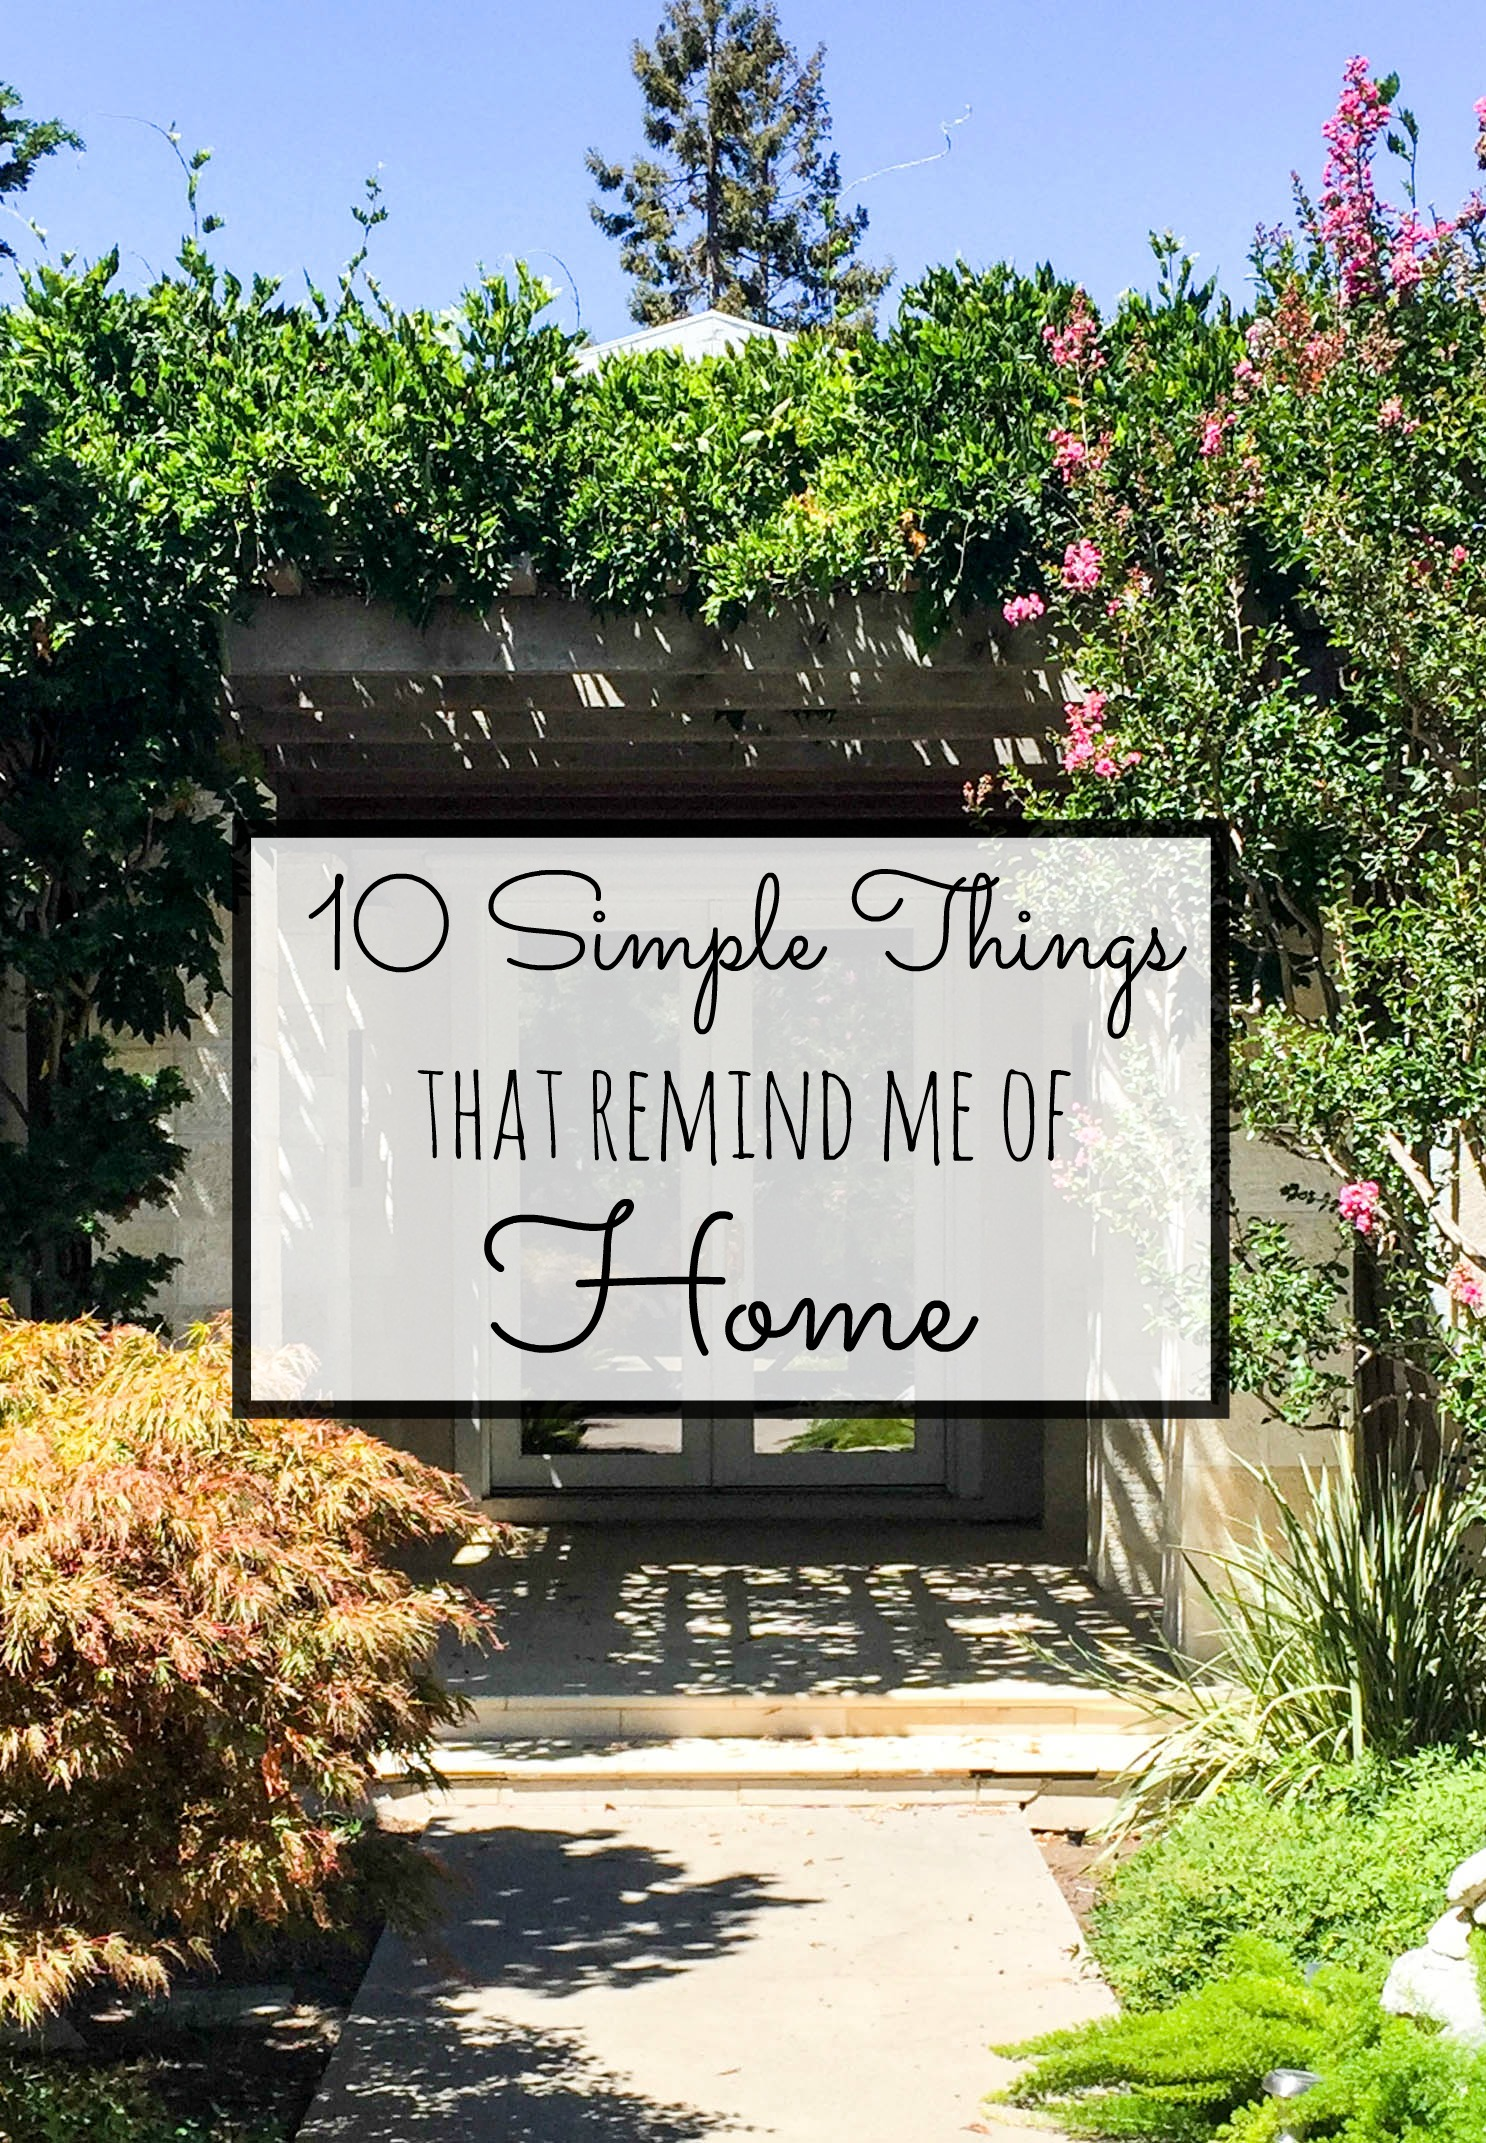 10 simple things that remind me of home- little memories that make it last forever